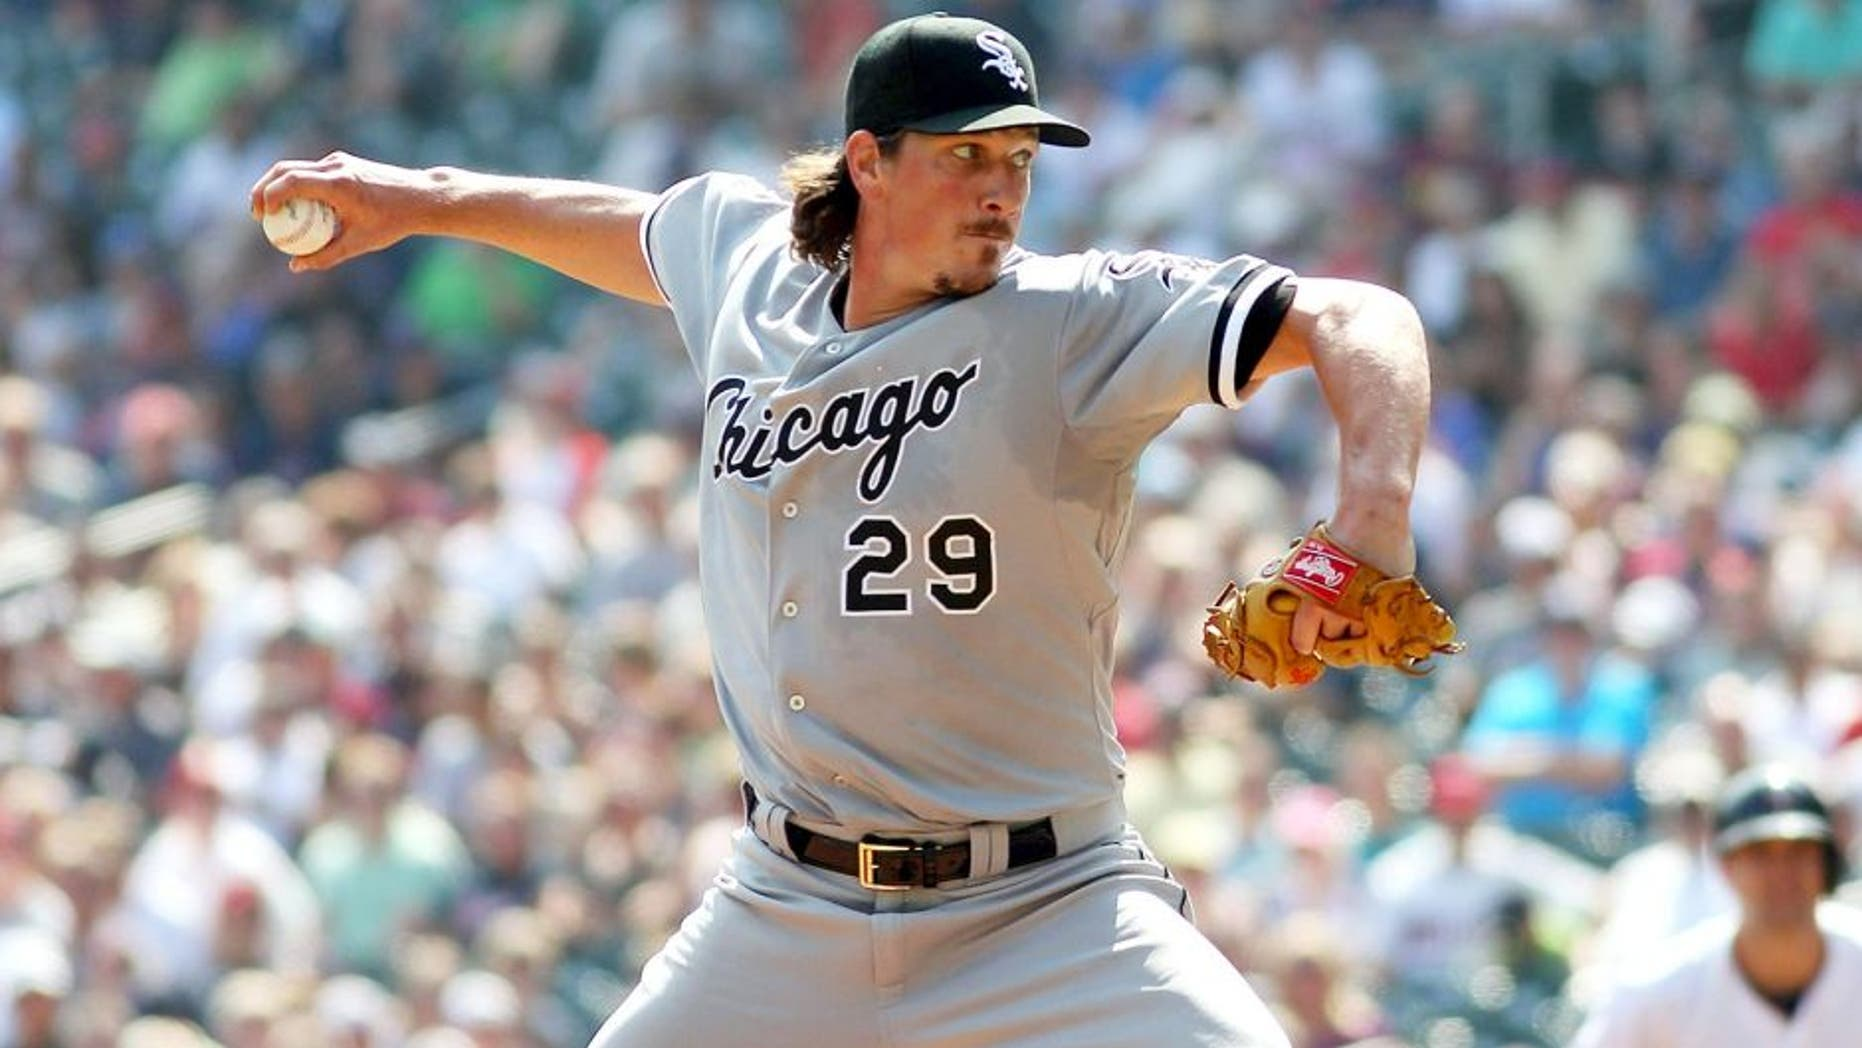 MINNEAPOLIS, MN - SEPTEMBER 3: Chicago White Sox Jeff Samardzija #29 in the first inning during MLB game action against the Minnesota Twins on September 3, 2015 at Target Field in Minneapolis, Minnesota. (Photo by Andy Clayton-King/Getty Images)